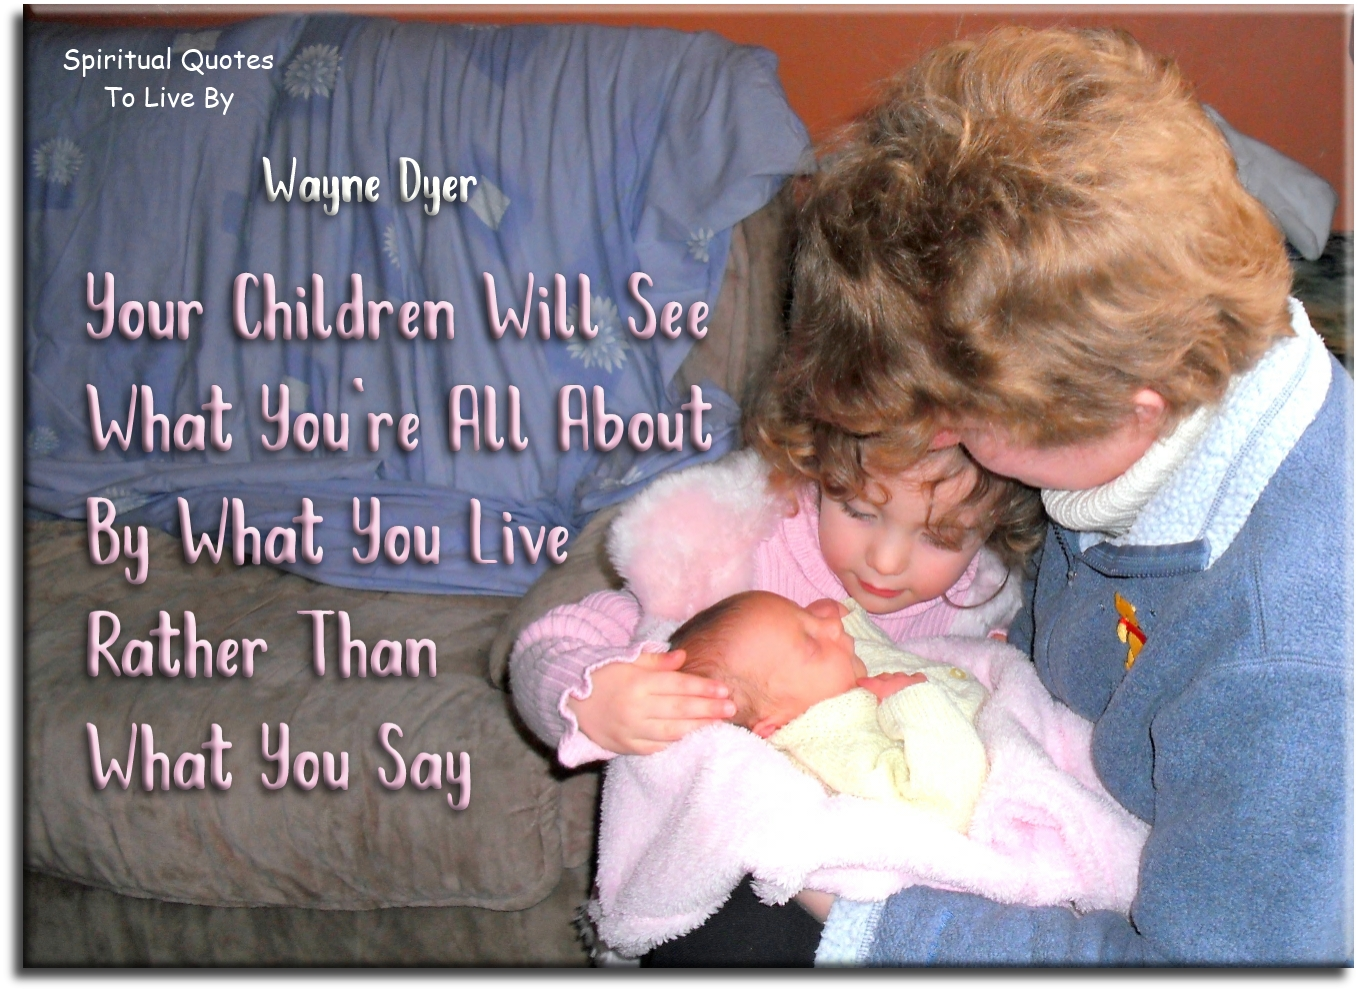 Wayne Dyer quote: Your children will see what you're all about by what you live rather than what you say. Spiritual Quotes To Live By